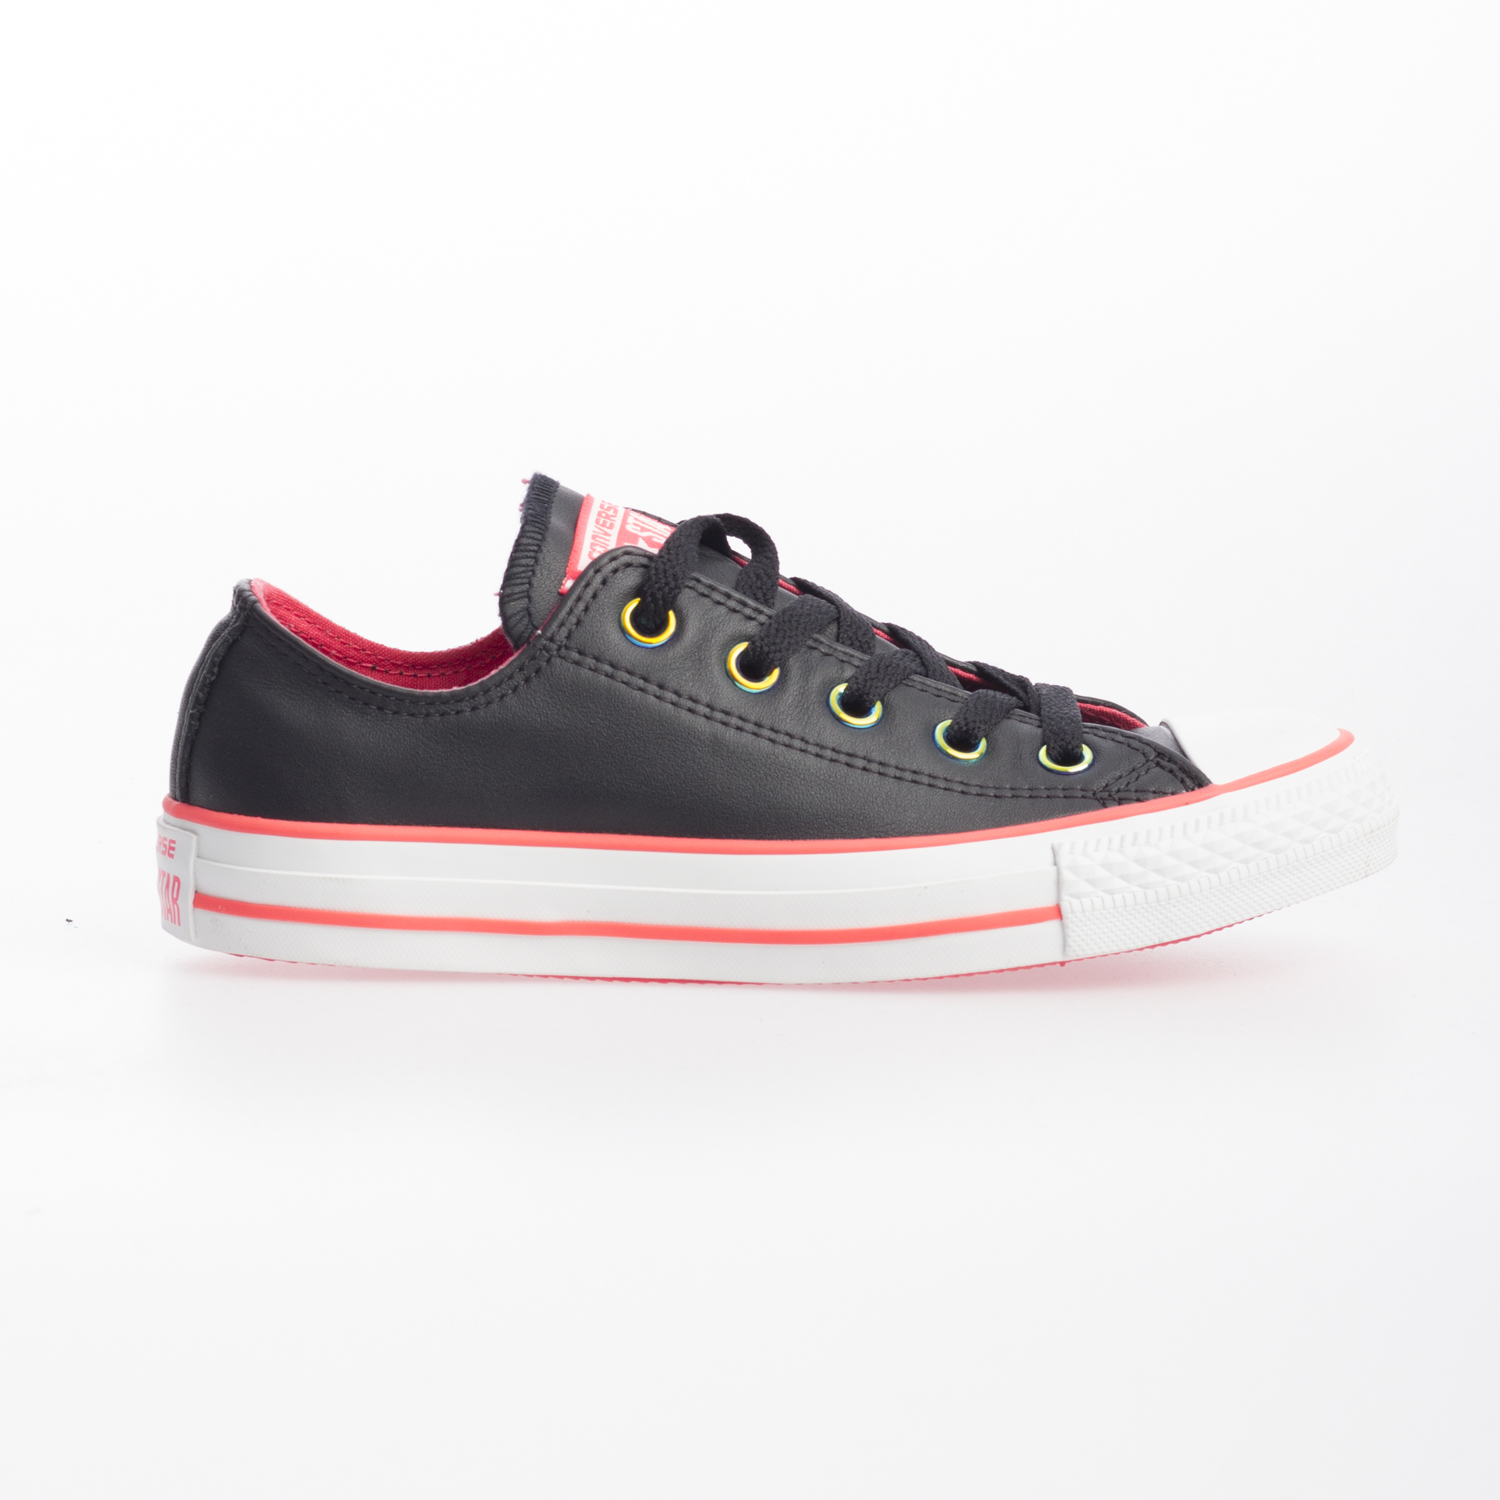 797a829d673 Details zu Converse Chuck Taylor All Star Ox Luster Black Lace Up Trainers  Pink Detail